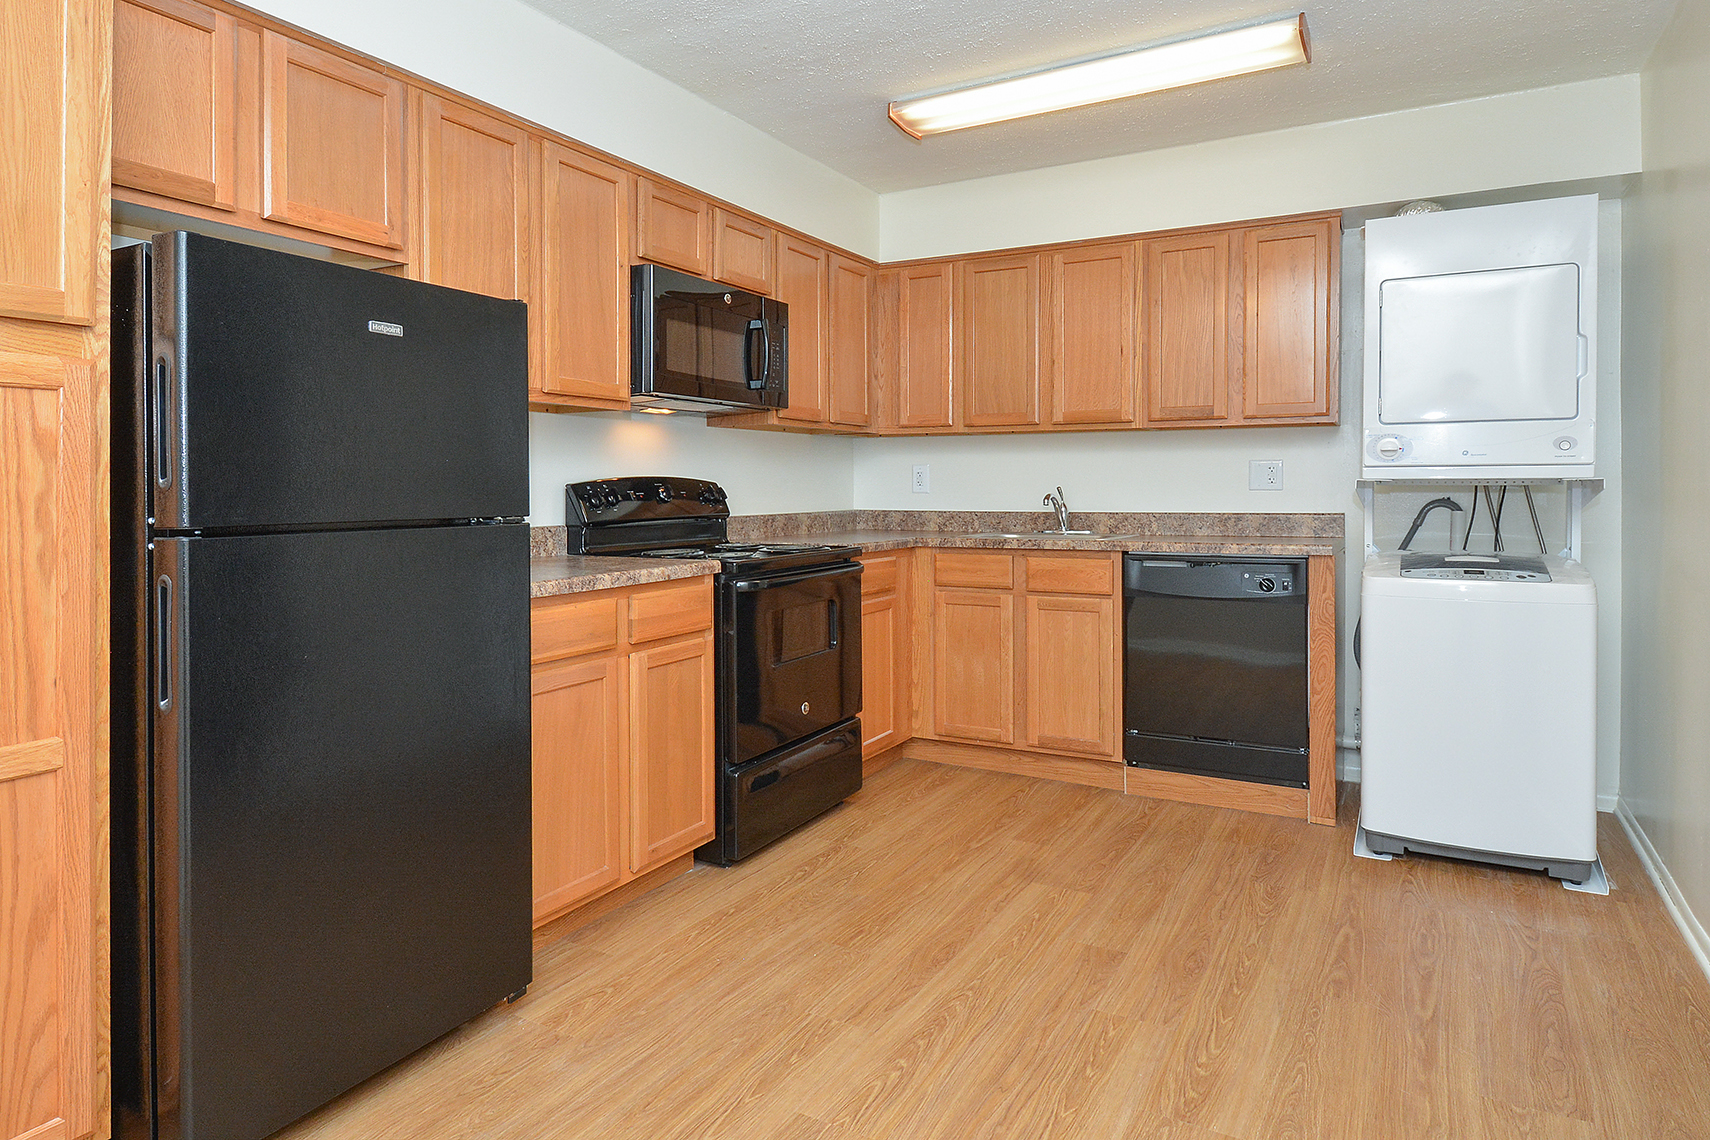 Modern Kitchen | Willow Grove PA Apartment For Rent | Willow Run Apartments